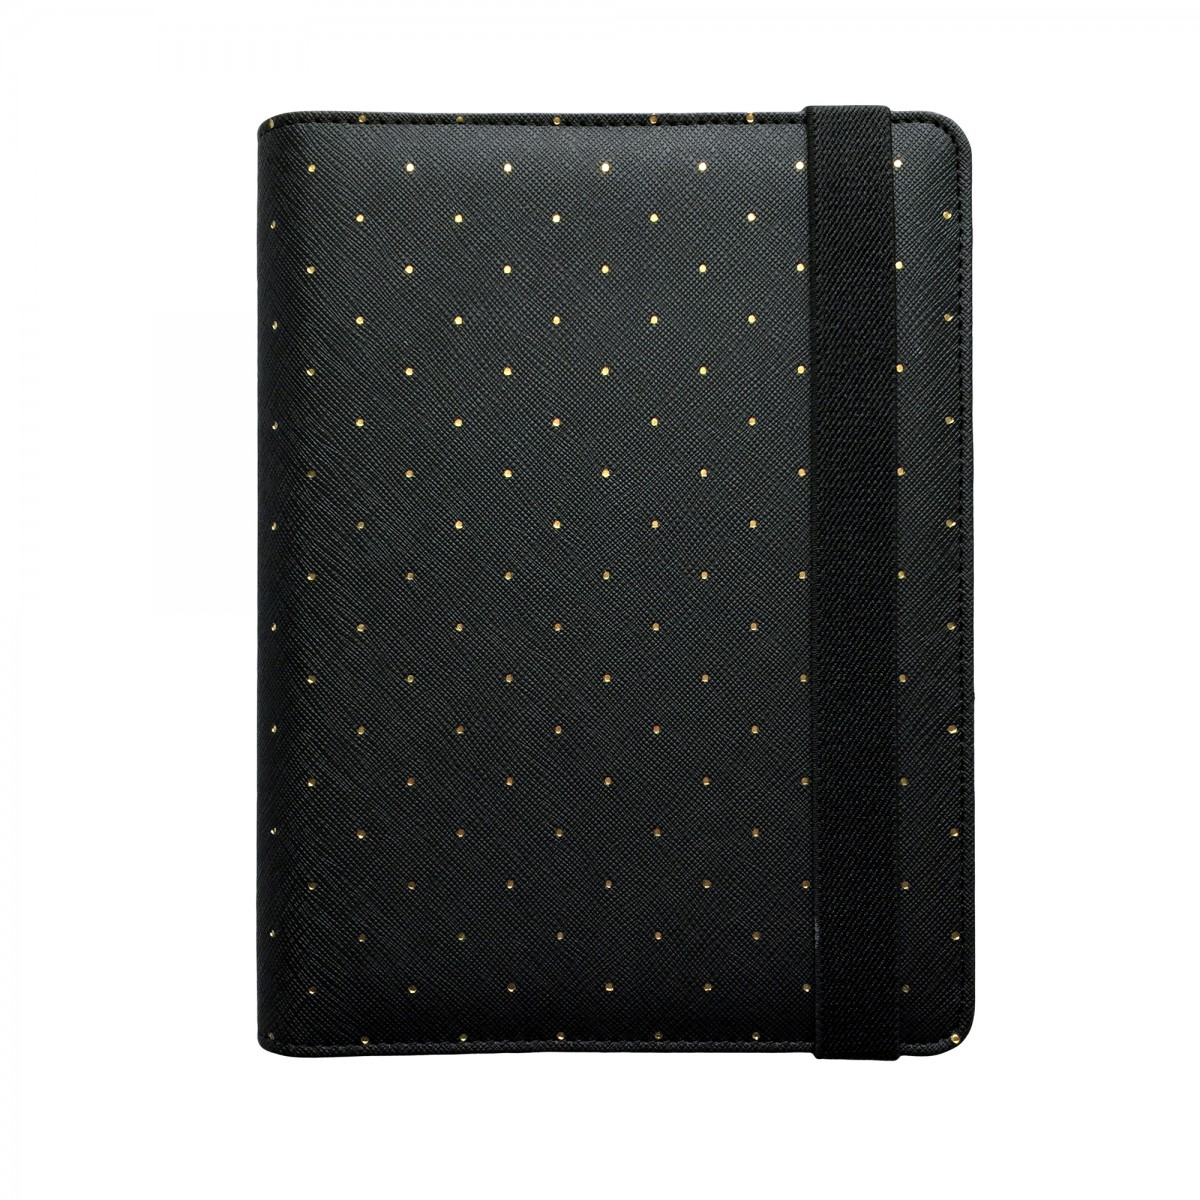 DOKIBOOK MIDNIGHT ELASTIC STRAP LARGE